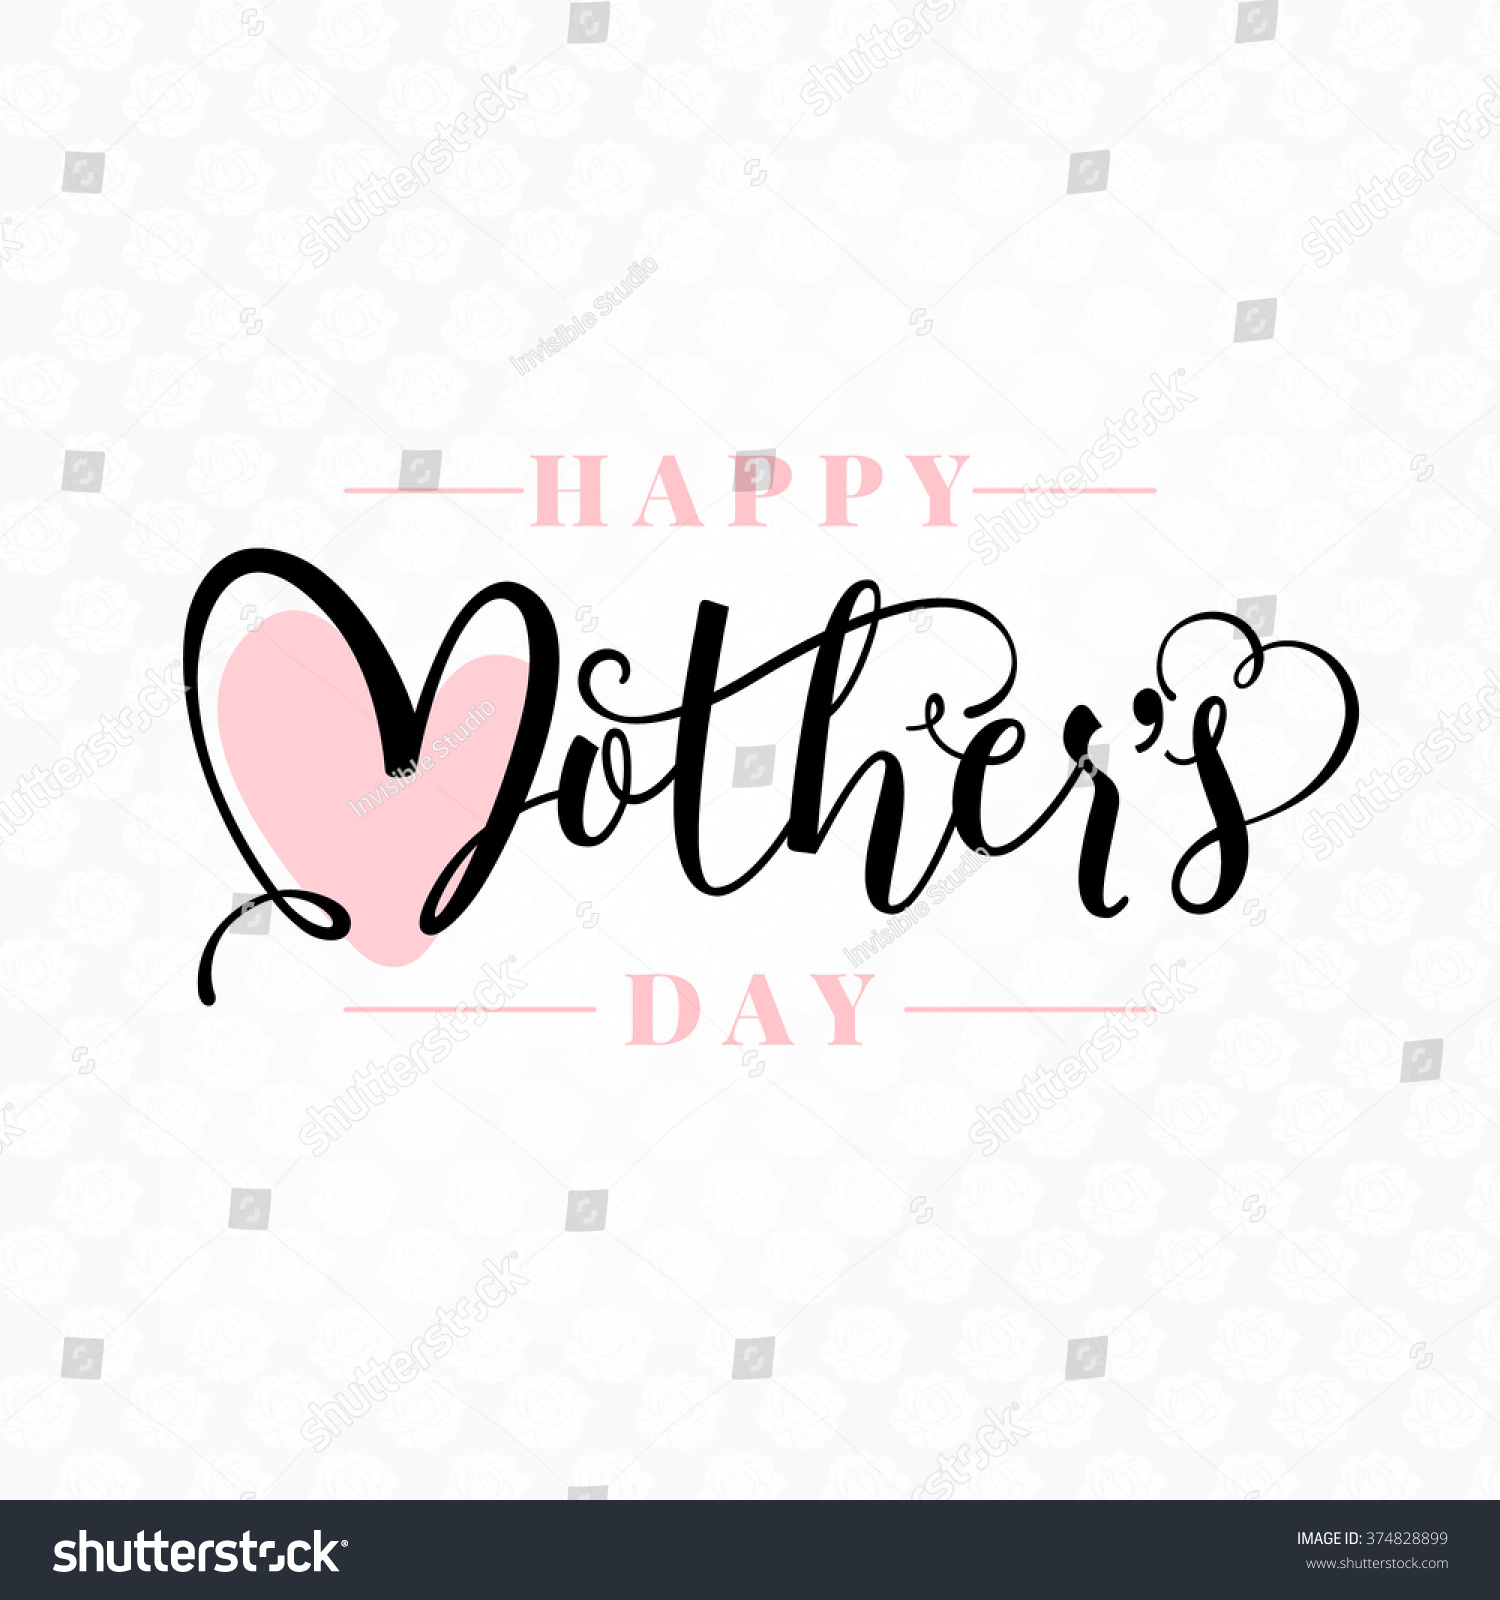 Happy mother s day calligraphy background stock vector